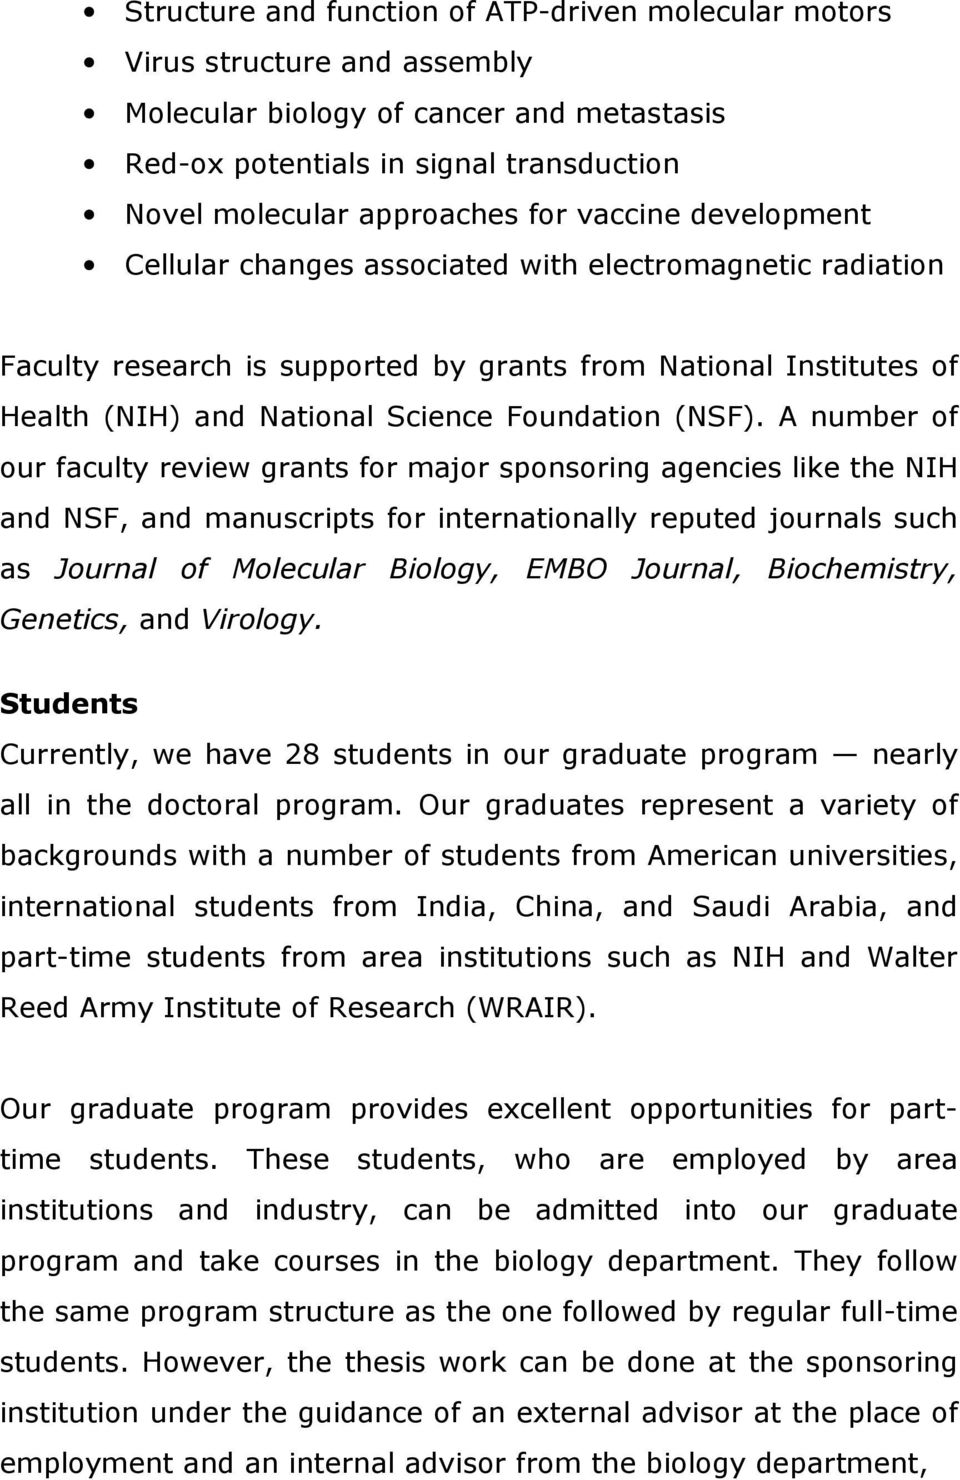 A number of our faculty review grants for major sponsoring agencies like the NIH and NSF, and manuscripts for internationally reputed journals such as Journal of Molecular Biology, EMBO Journal,